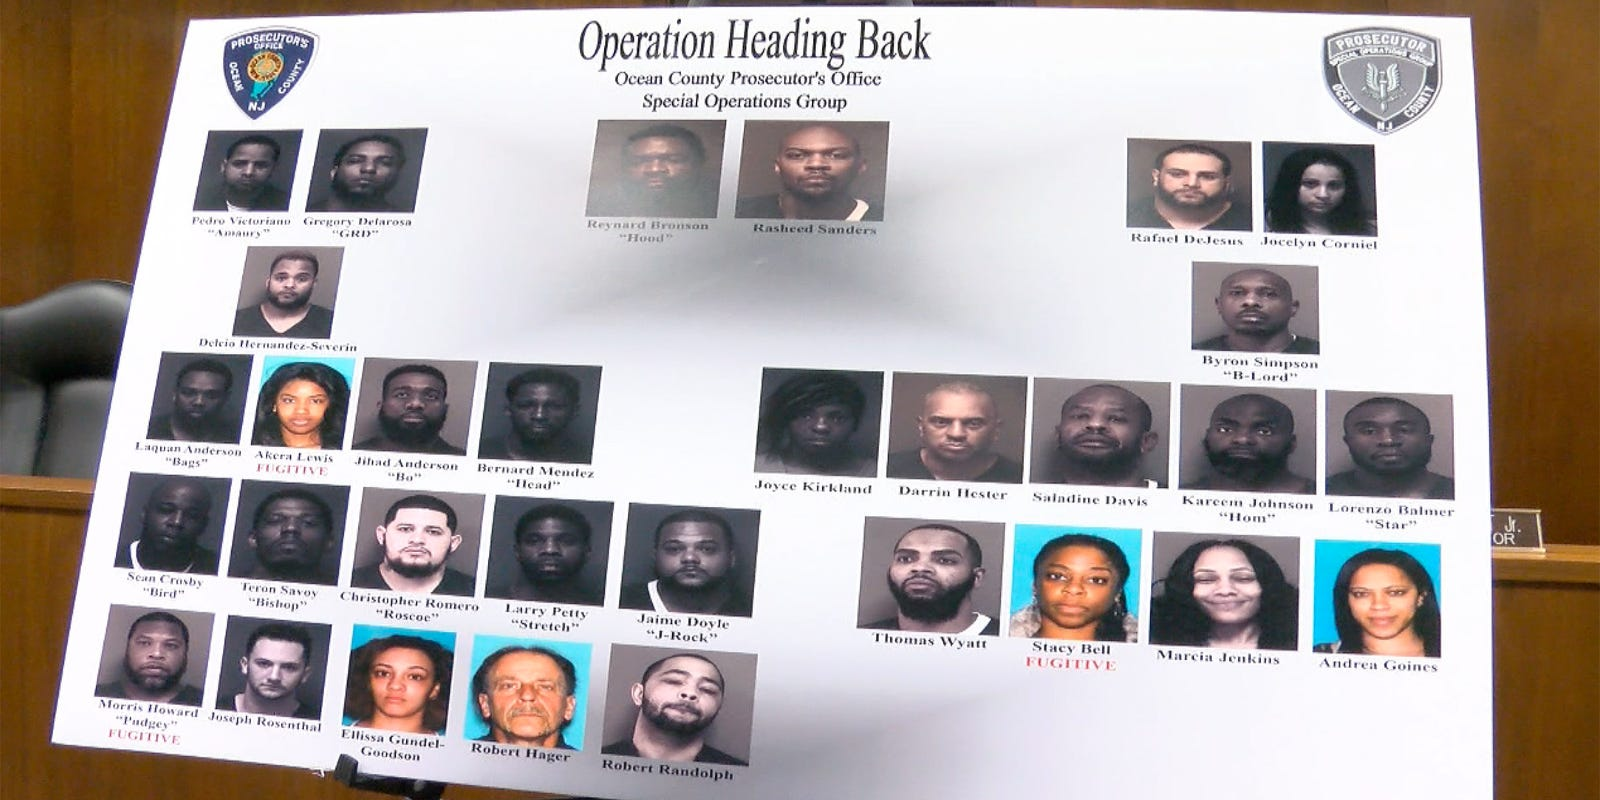 NJ drug bust: Who was charged in Operation Heading Back?